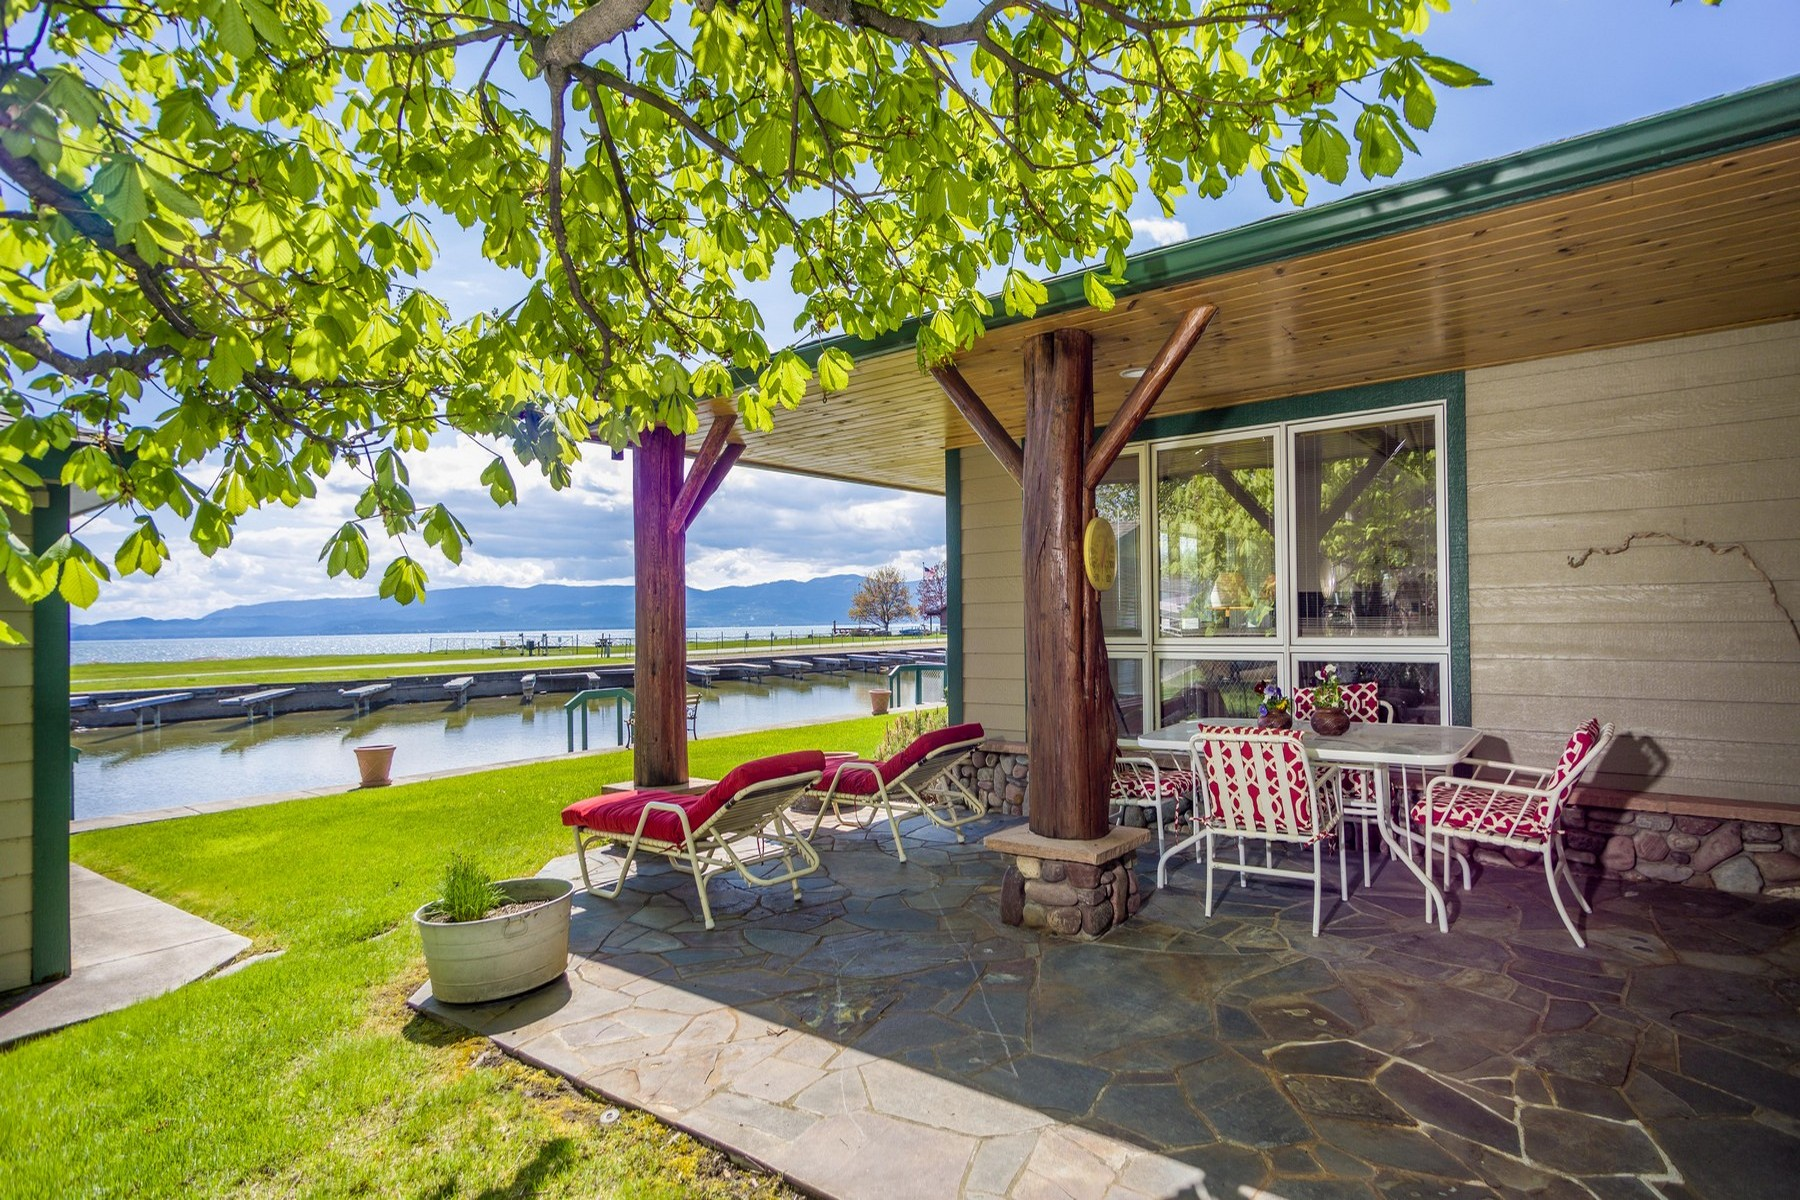 Single Family Home for Sale at 160 Parkway Ave , Bigfork, MT 59911 160 Parkway Ave Bigfork, Montana 59911 United States